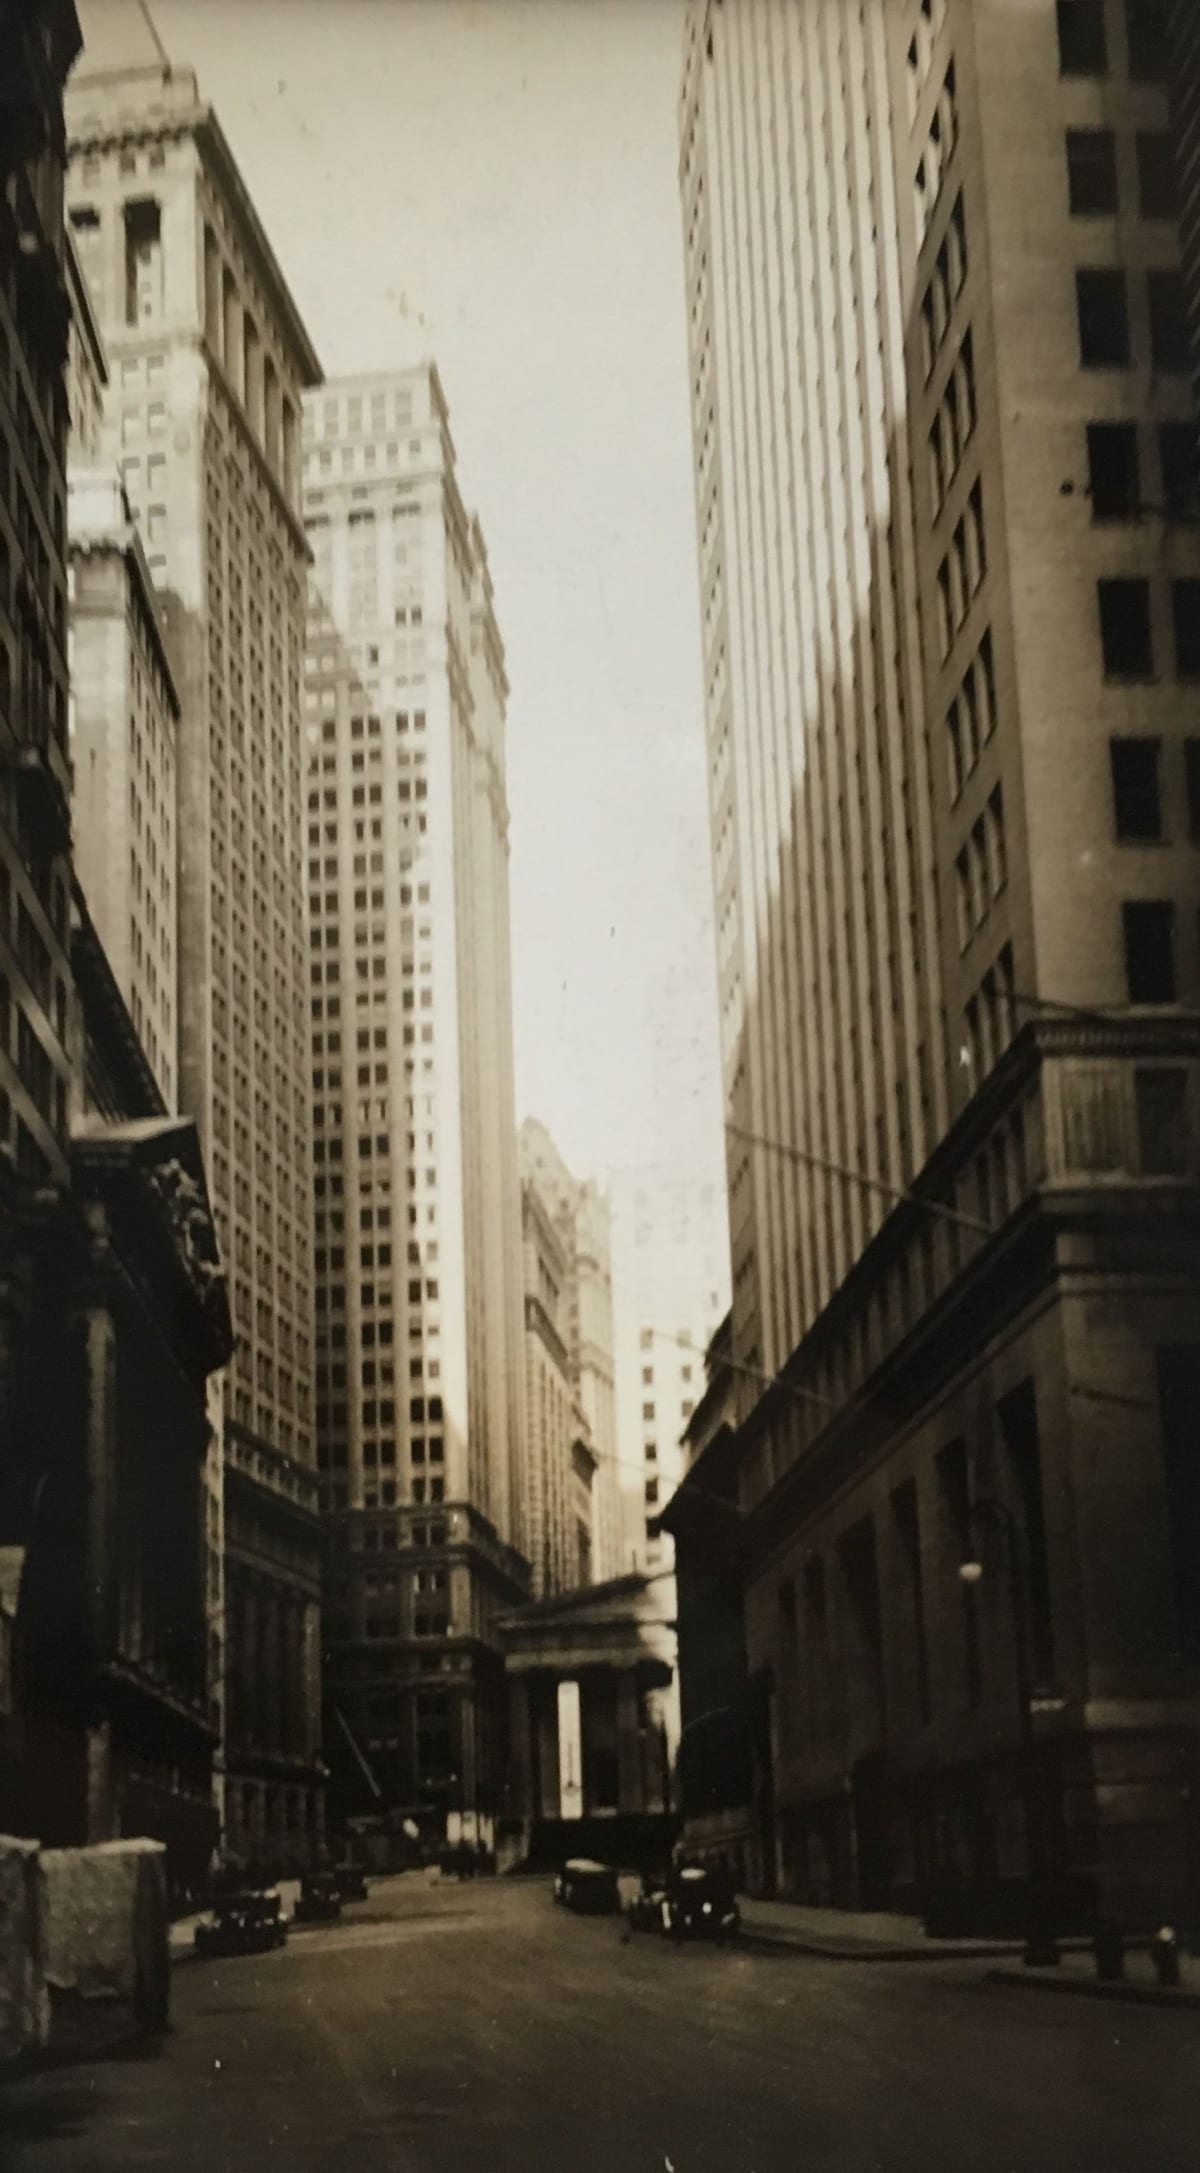 Fred Zinnemann Wall Street, August 31, 1932 Gelatin silver print 4 1/4 x 2 1/2 inches; Signed, titled & dated in pencil on verso